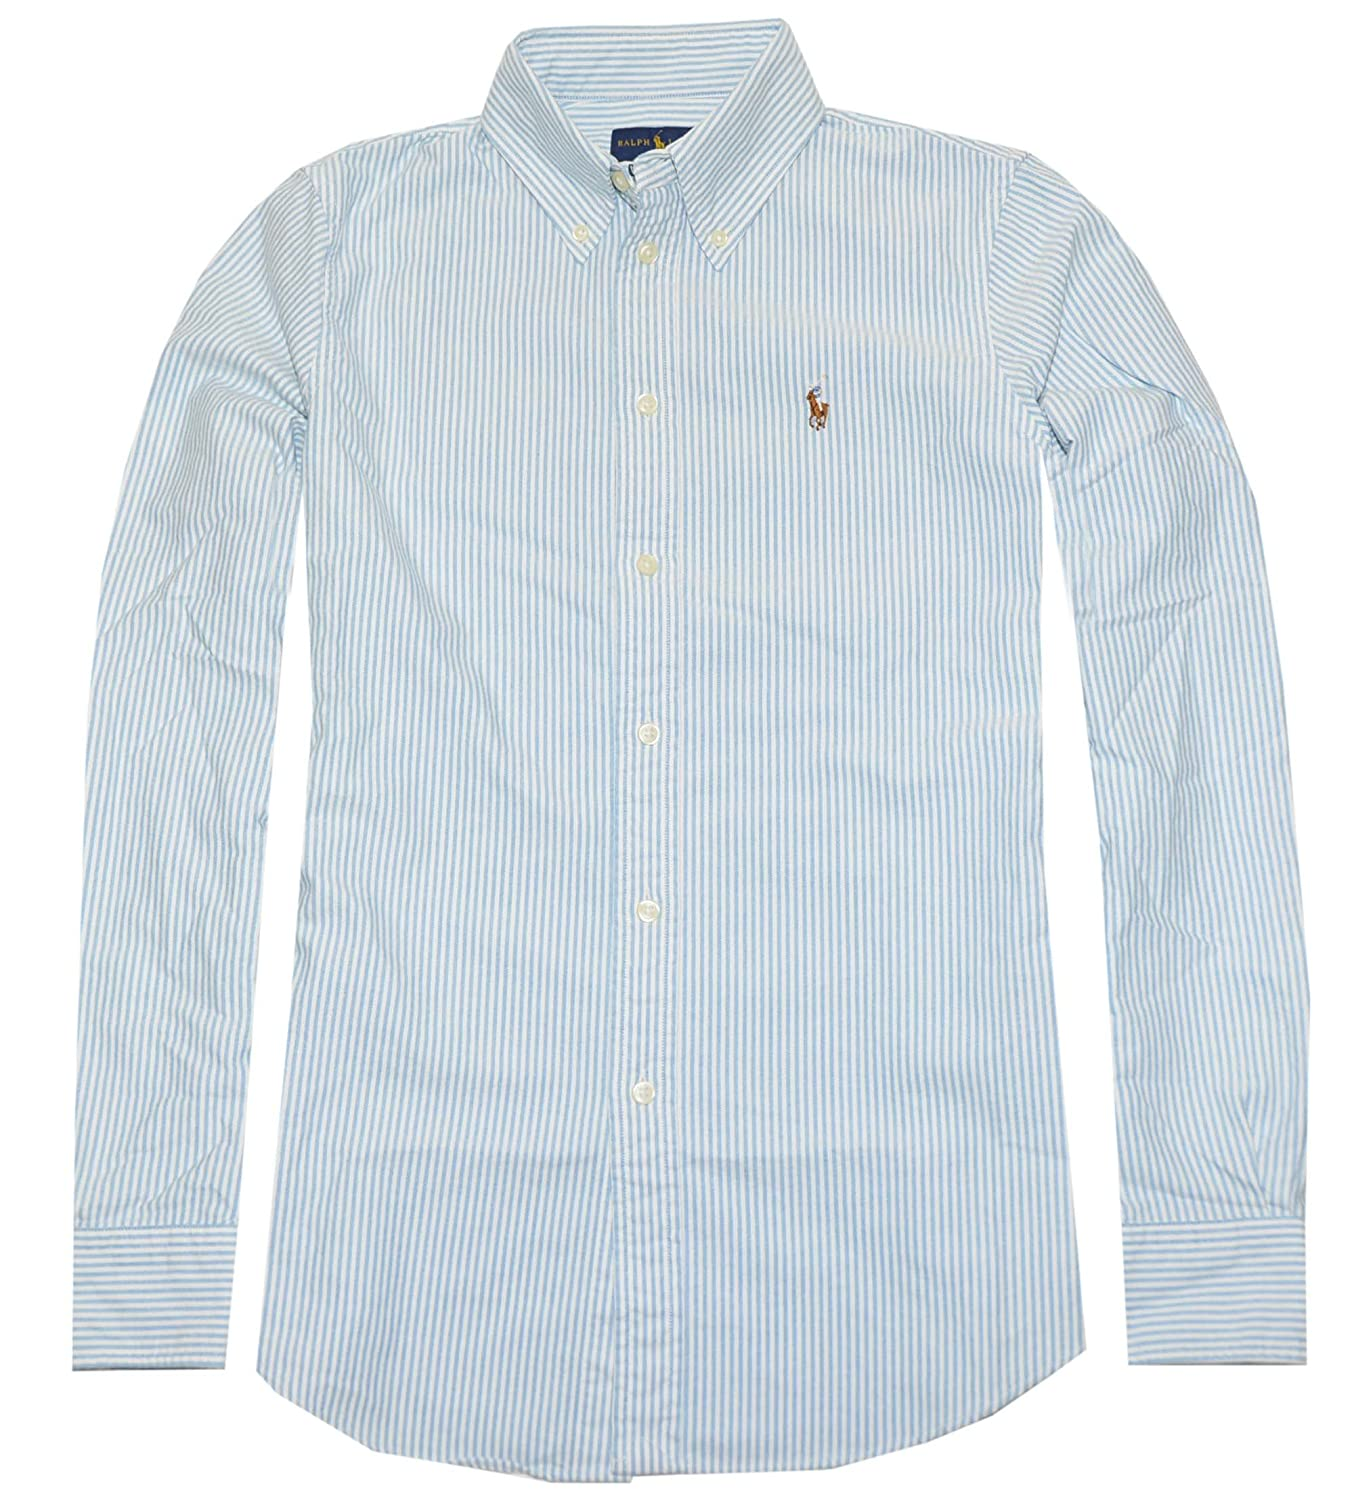 5cb5ffdeaae5 RALPH LAUREN Polo Women's Custom Fit Oxford Button Down Shirt at Amazon  Women's Clothing store: